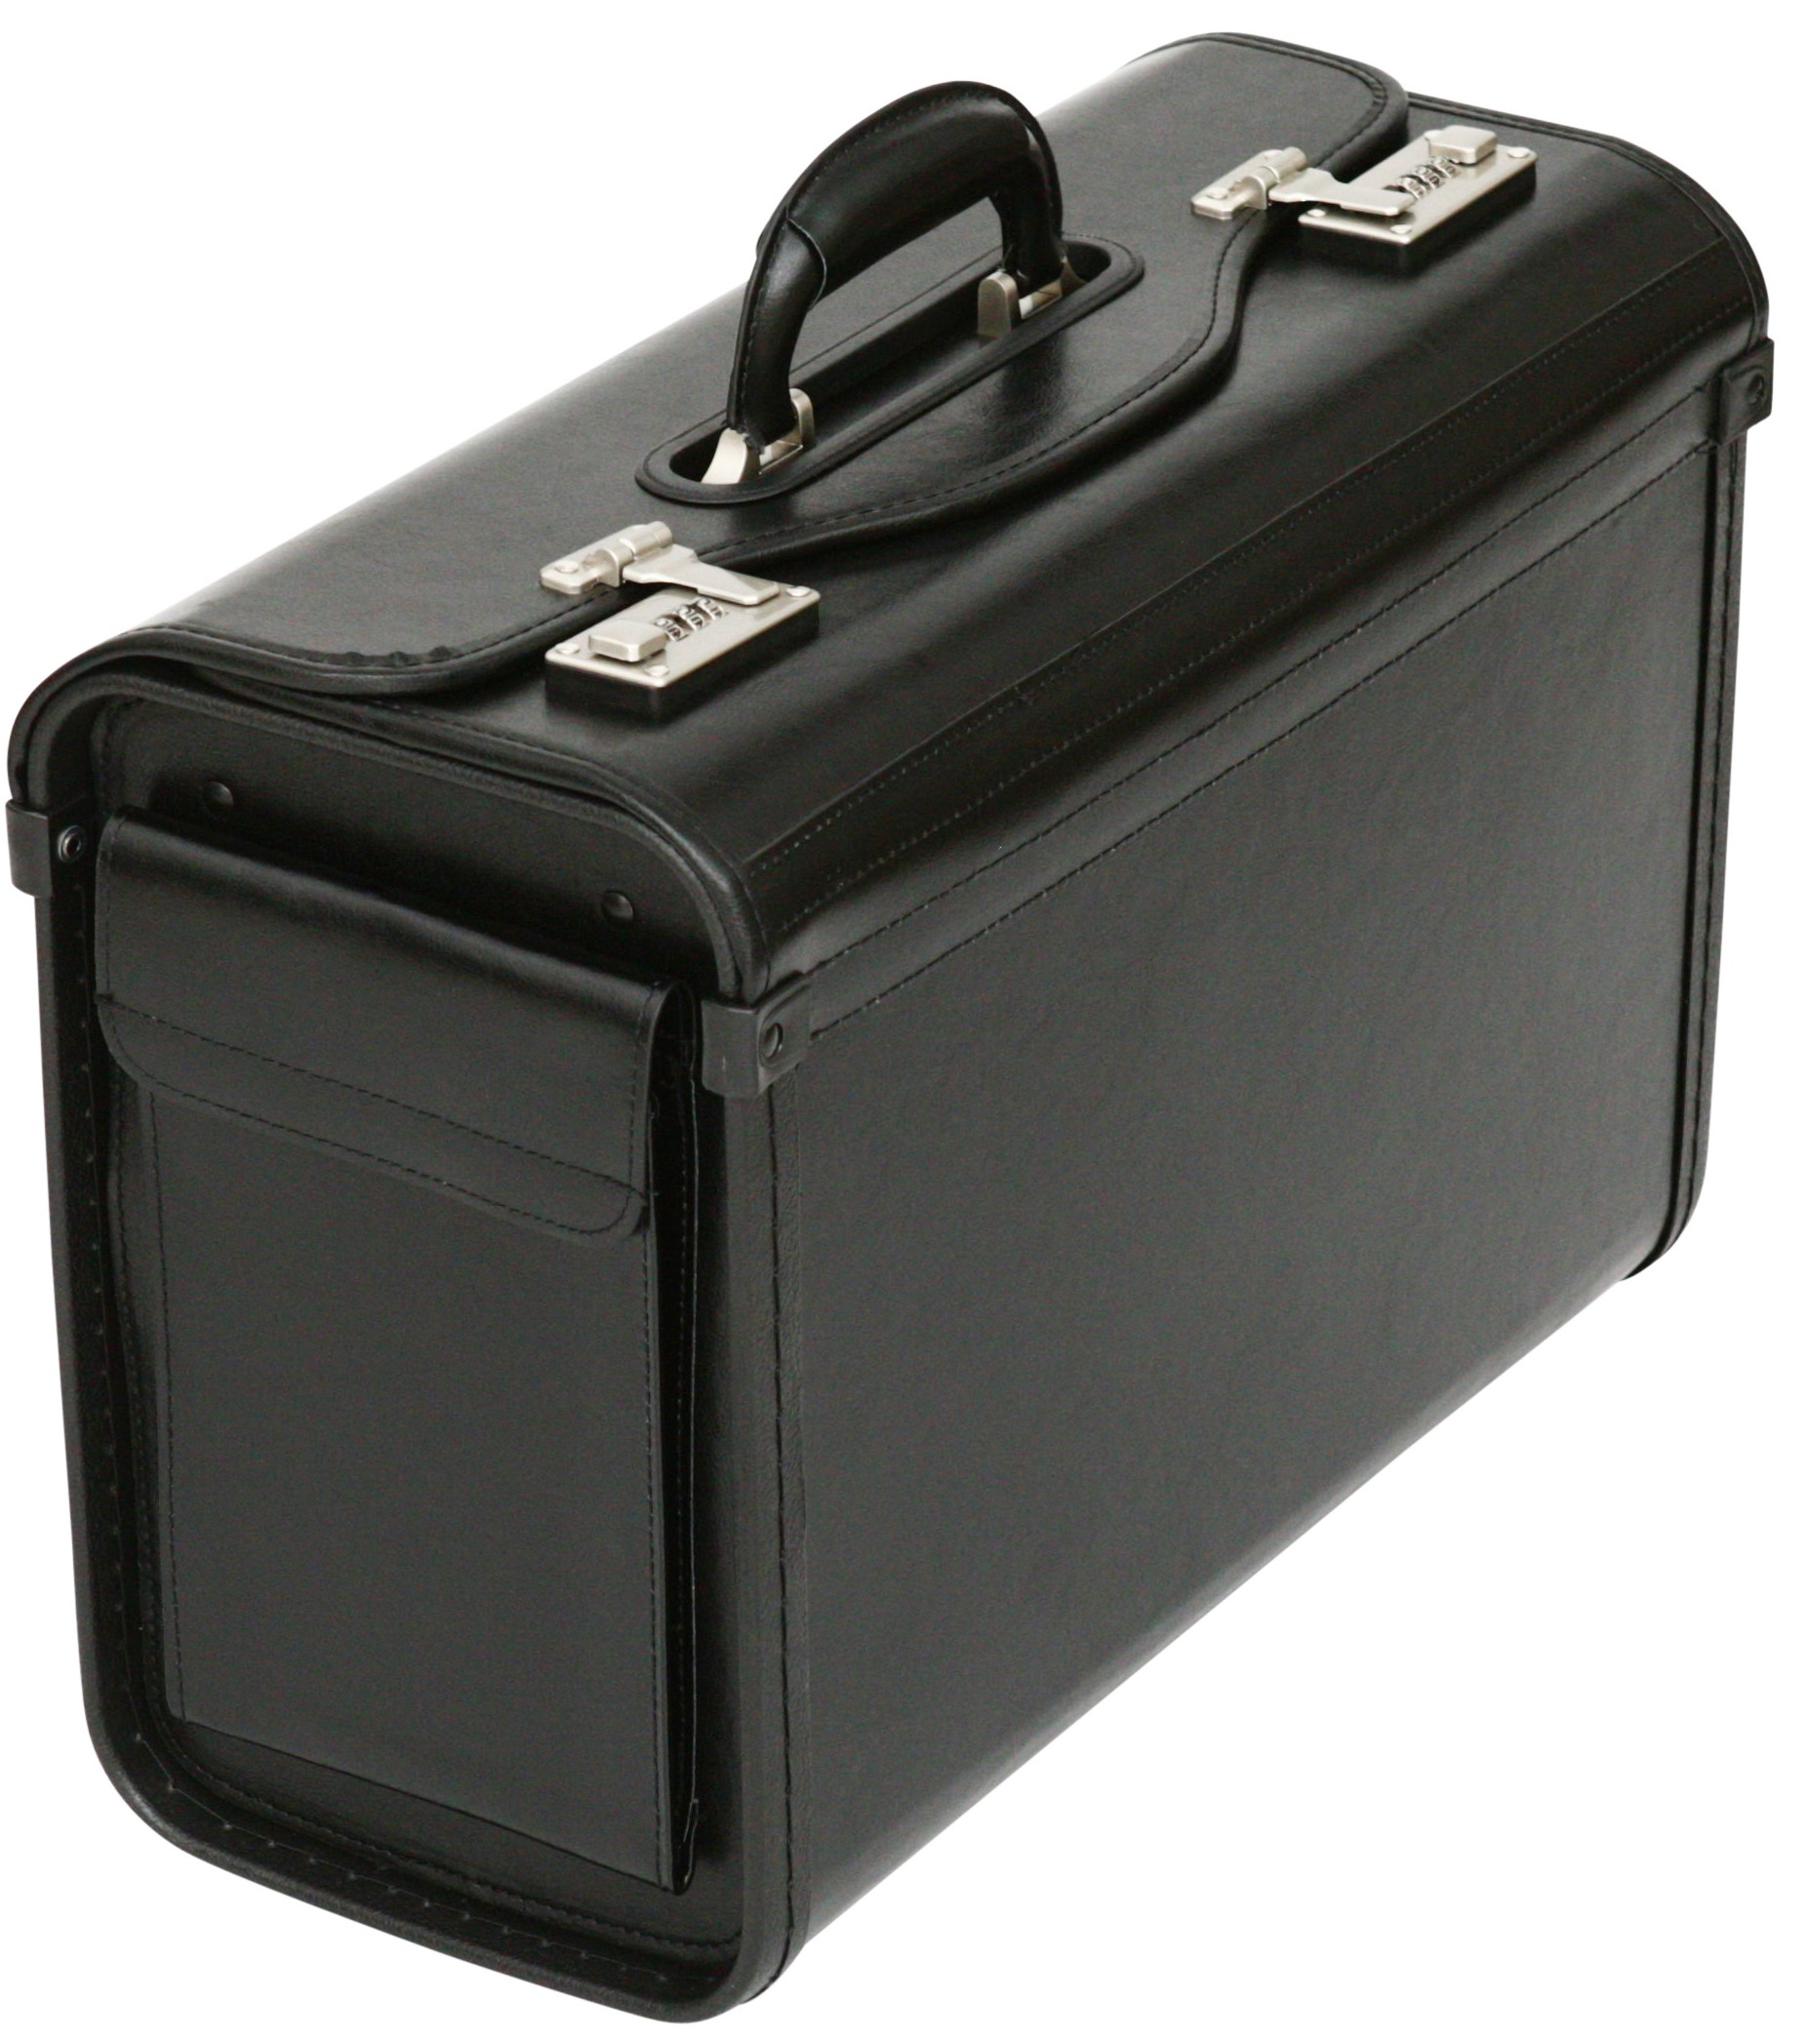 ef4d8fa406 Bonded Leather Pilot Case Doctor Briefcase Hand Luggage Flight Cabin  Business Bag. Executive ...